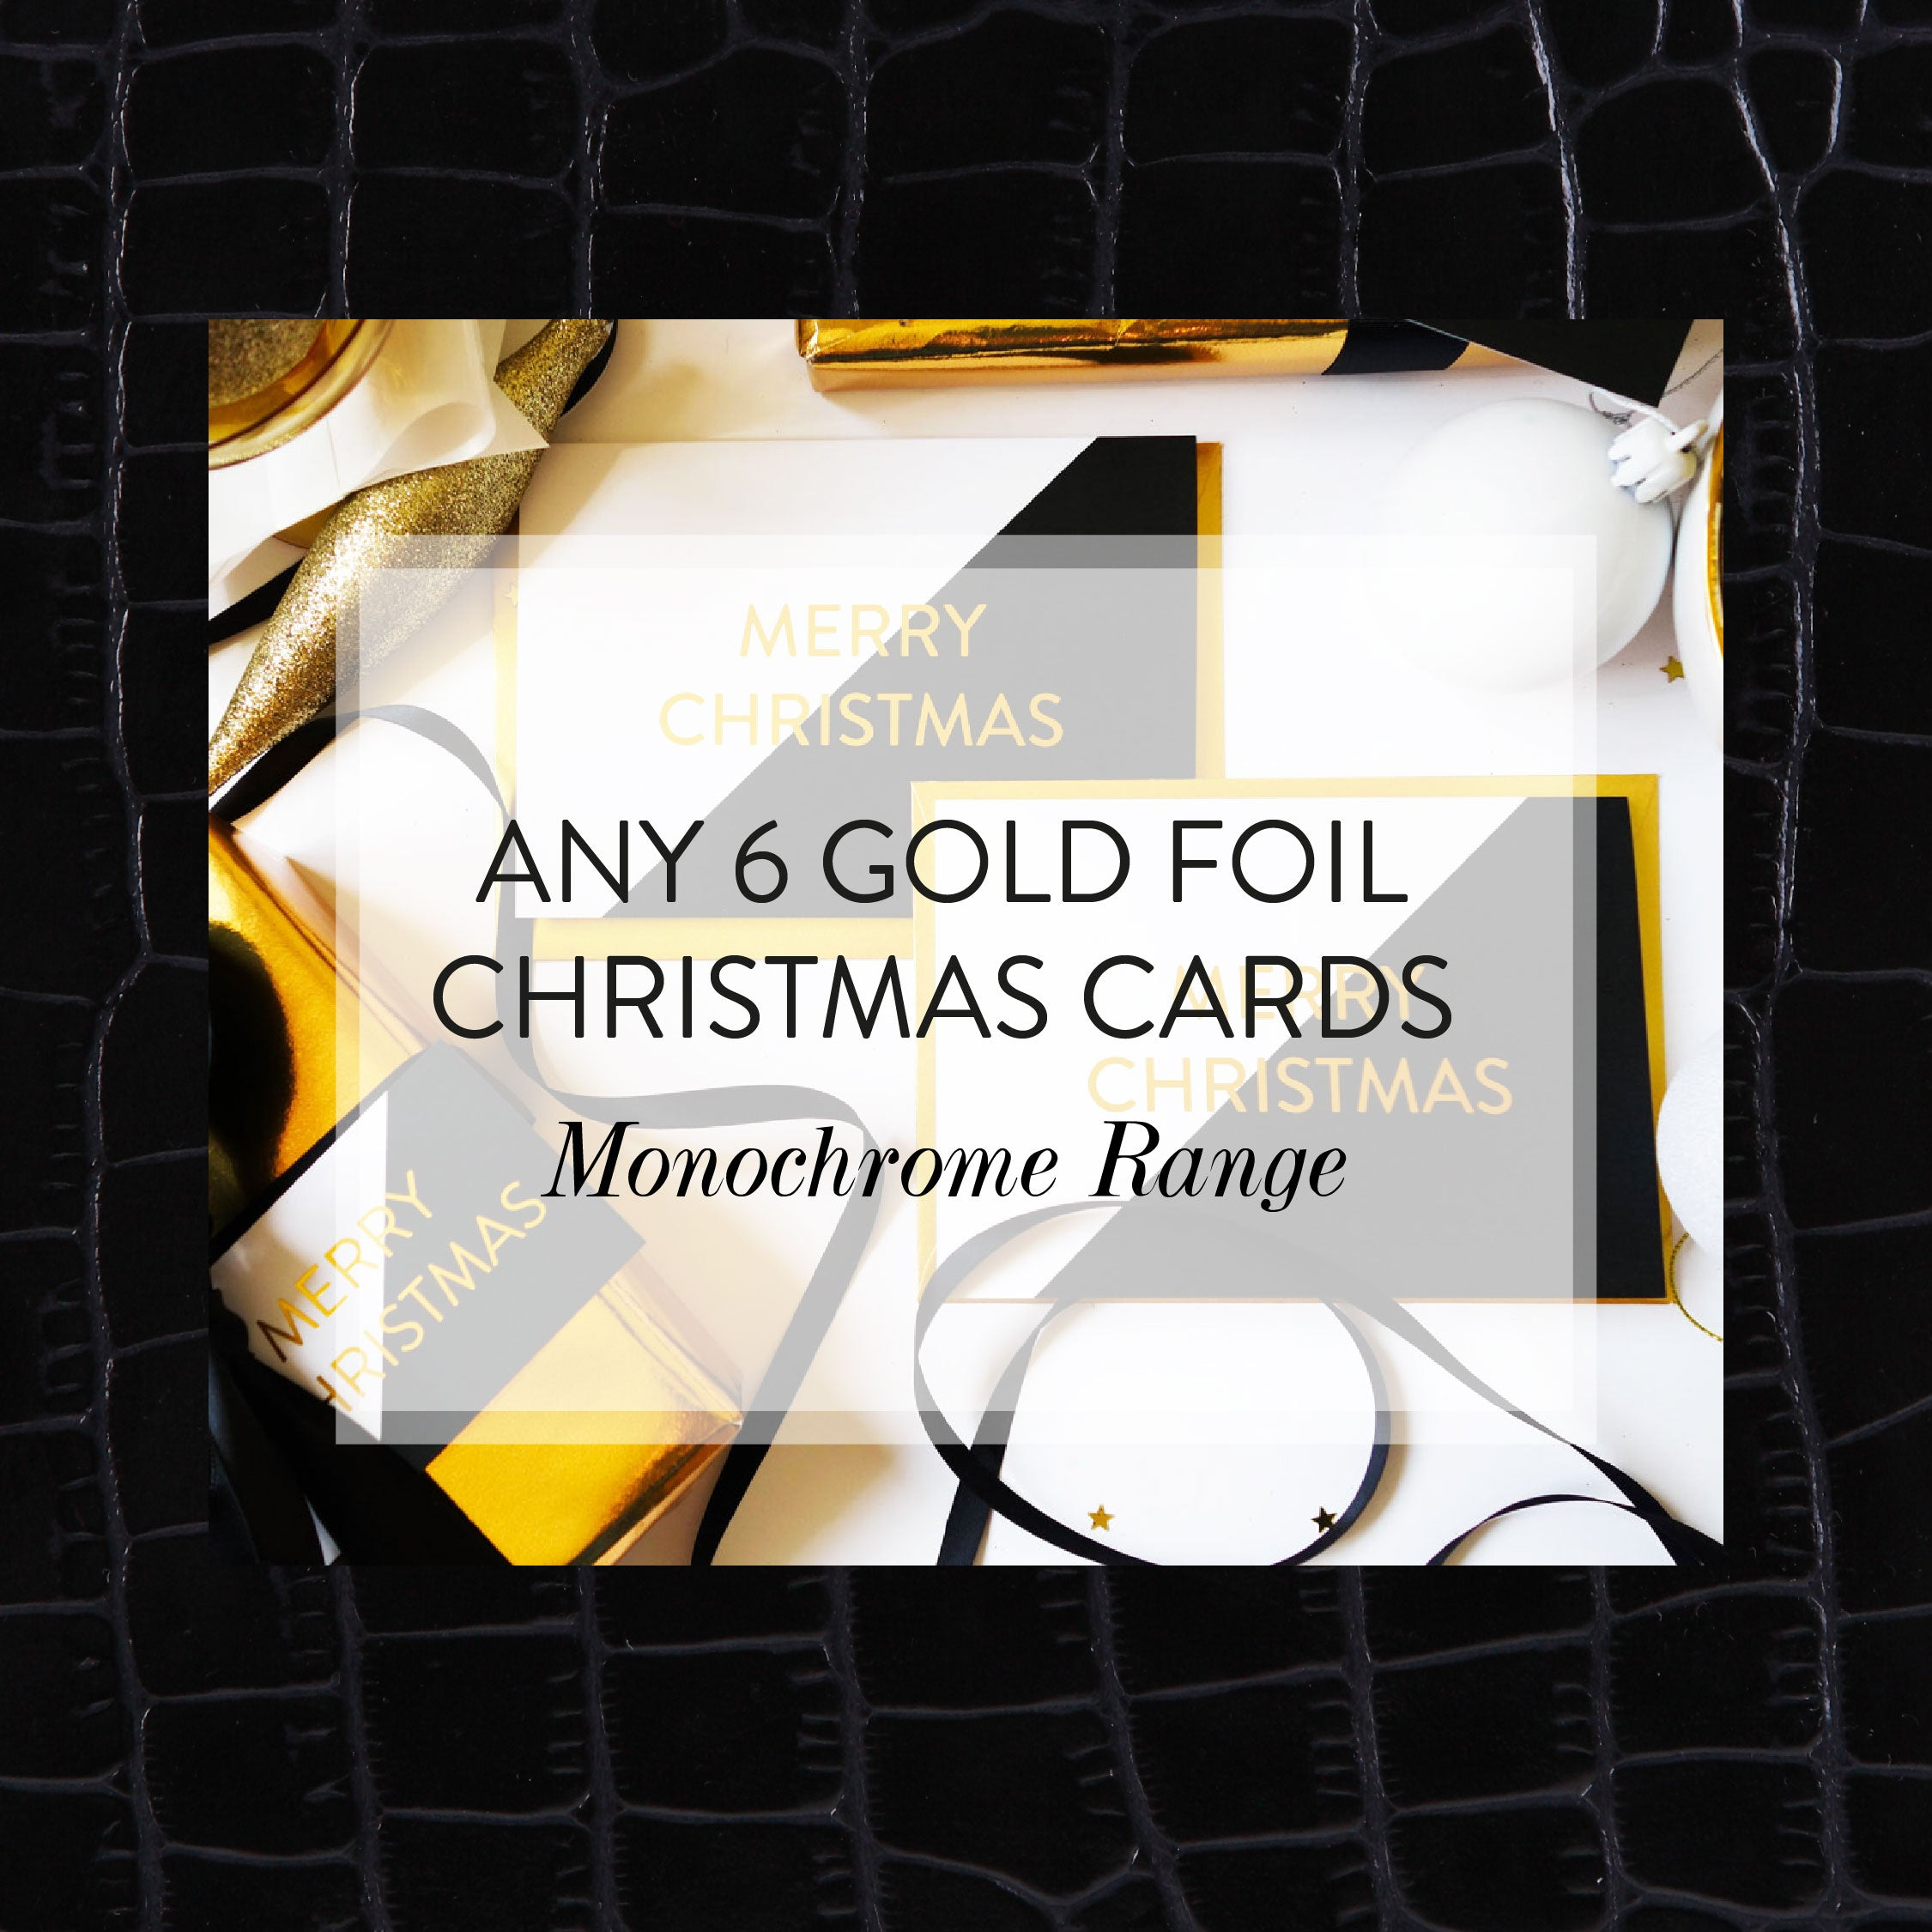 6 x Gold Foil Christmas Cards-Monochrome Range